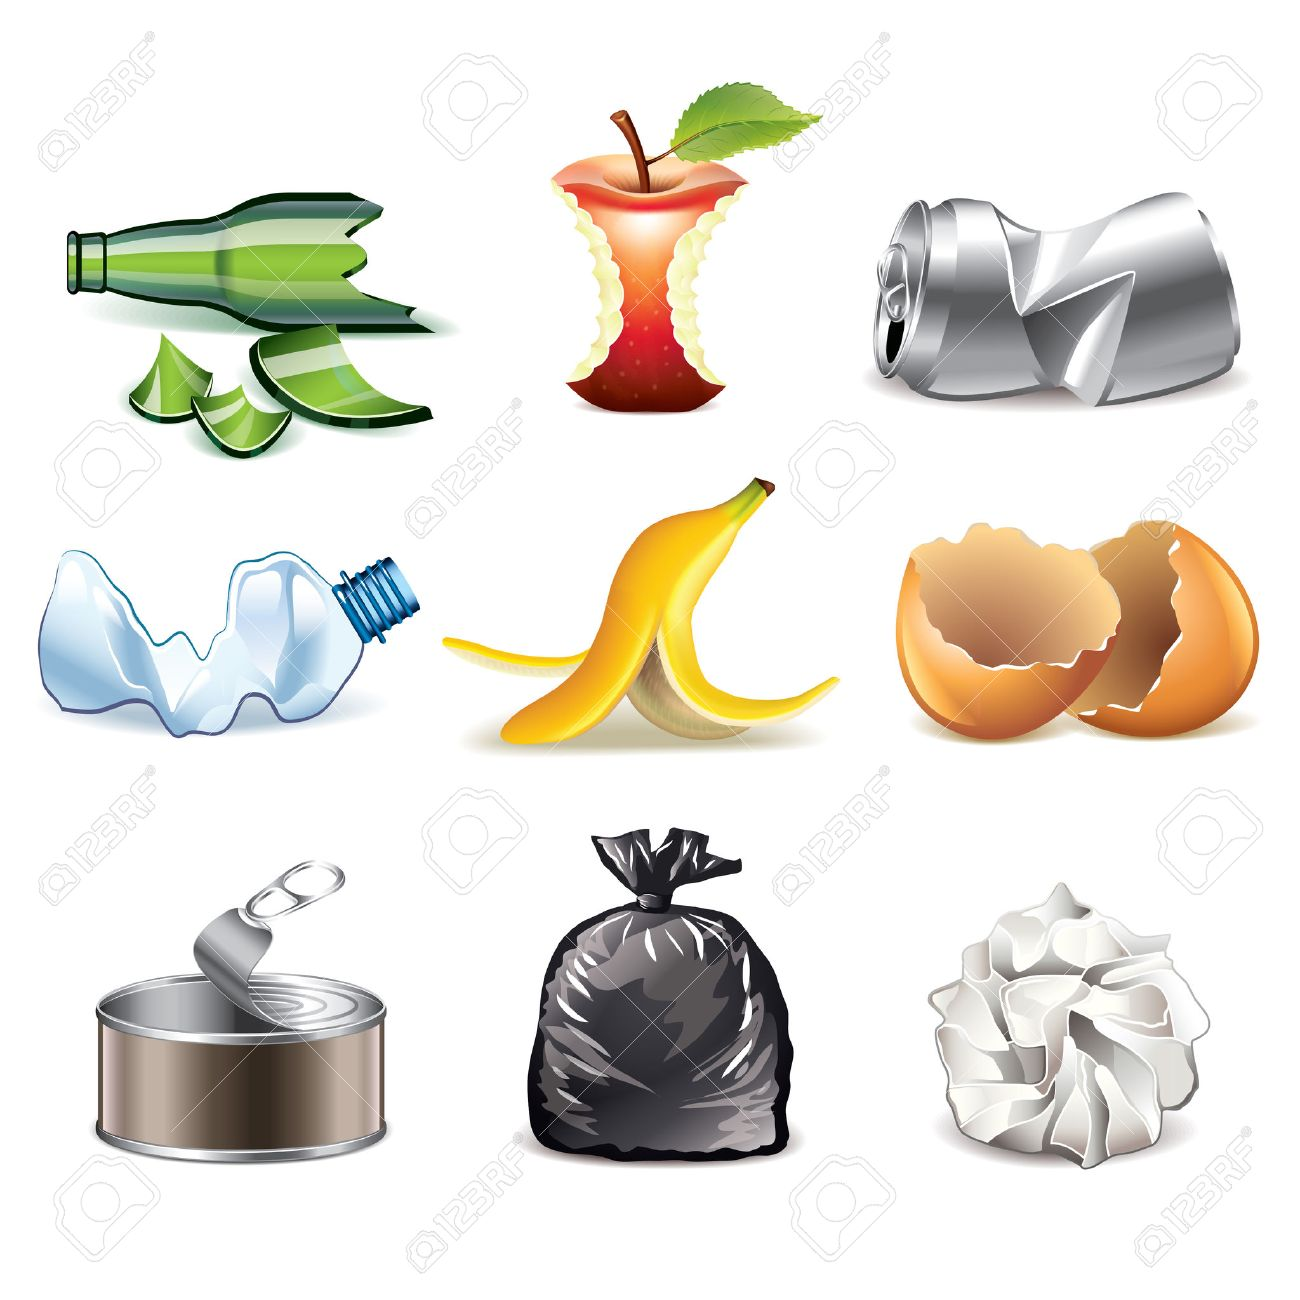 Garbage and waste icons detailed photo-realistic vector set - 28524251